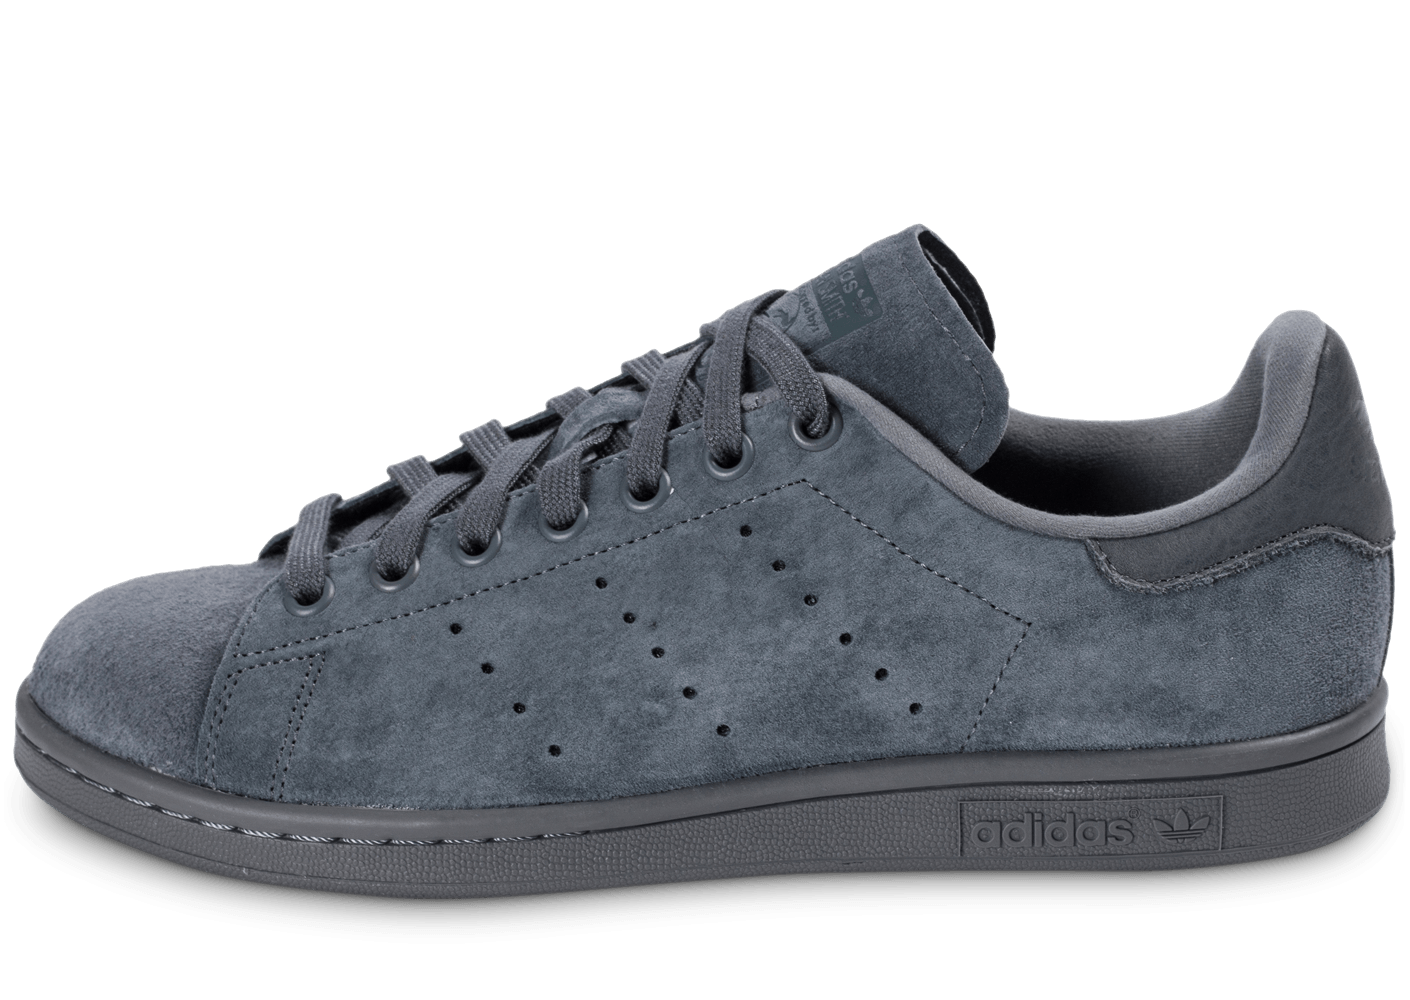 7b4c0b1bc8a4 adidas Stan Smith Onyx - Chaussures Baskets homme - Chausport